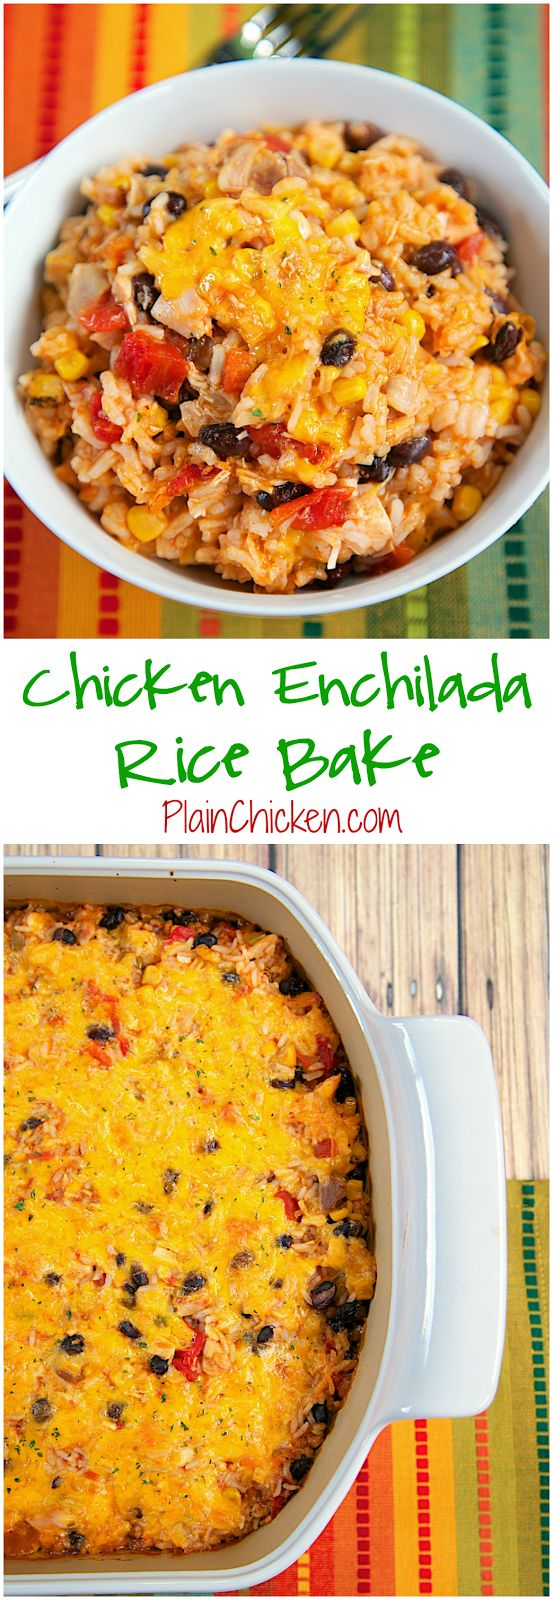 Chicken Enchilada Rice Bake Recipe - chicken, black beans, corn, Rotel tomatoes, cheese, rice and enchilada sauce! SO good! I wanted to eat the whole pan! Use rotisserie chicken and this is ready for the oven in 10 minutes. Super quick Mexican dinner recipe.